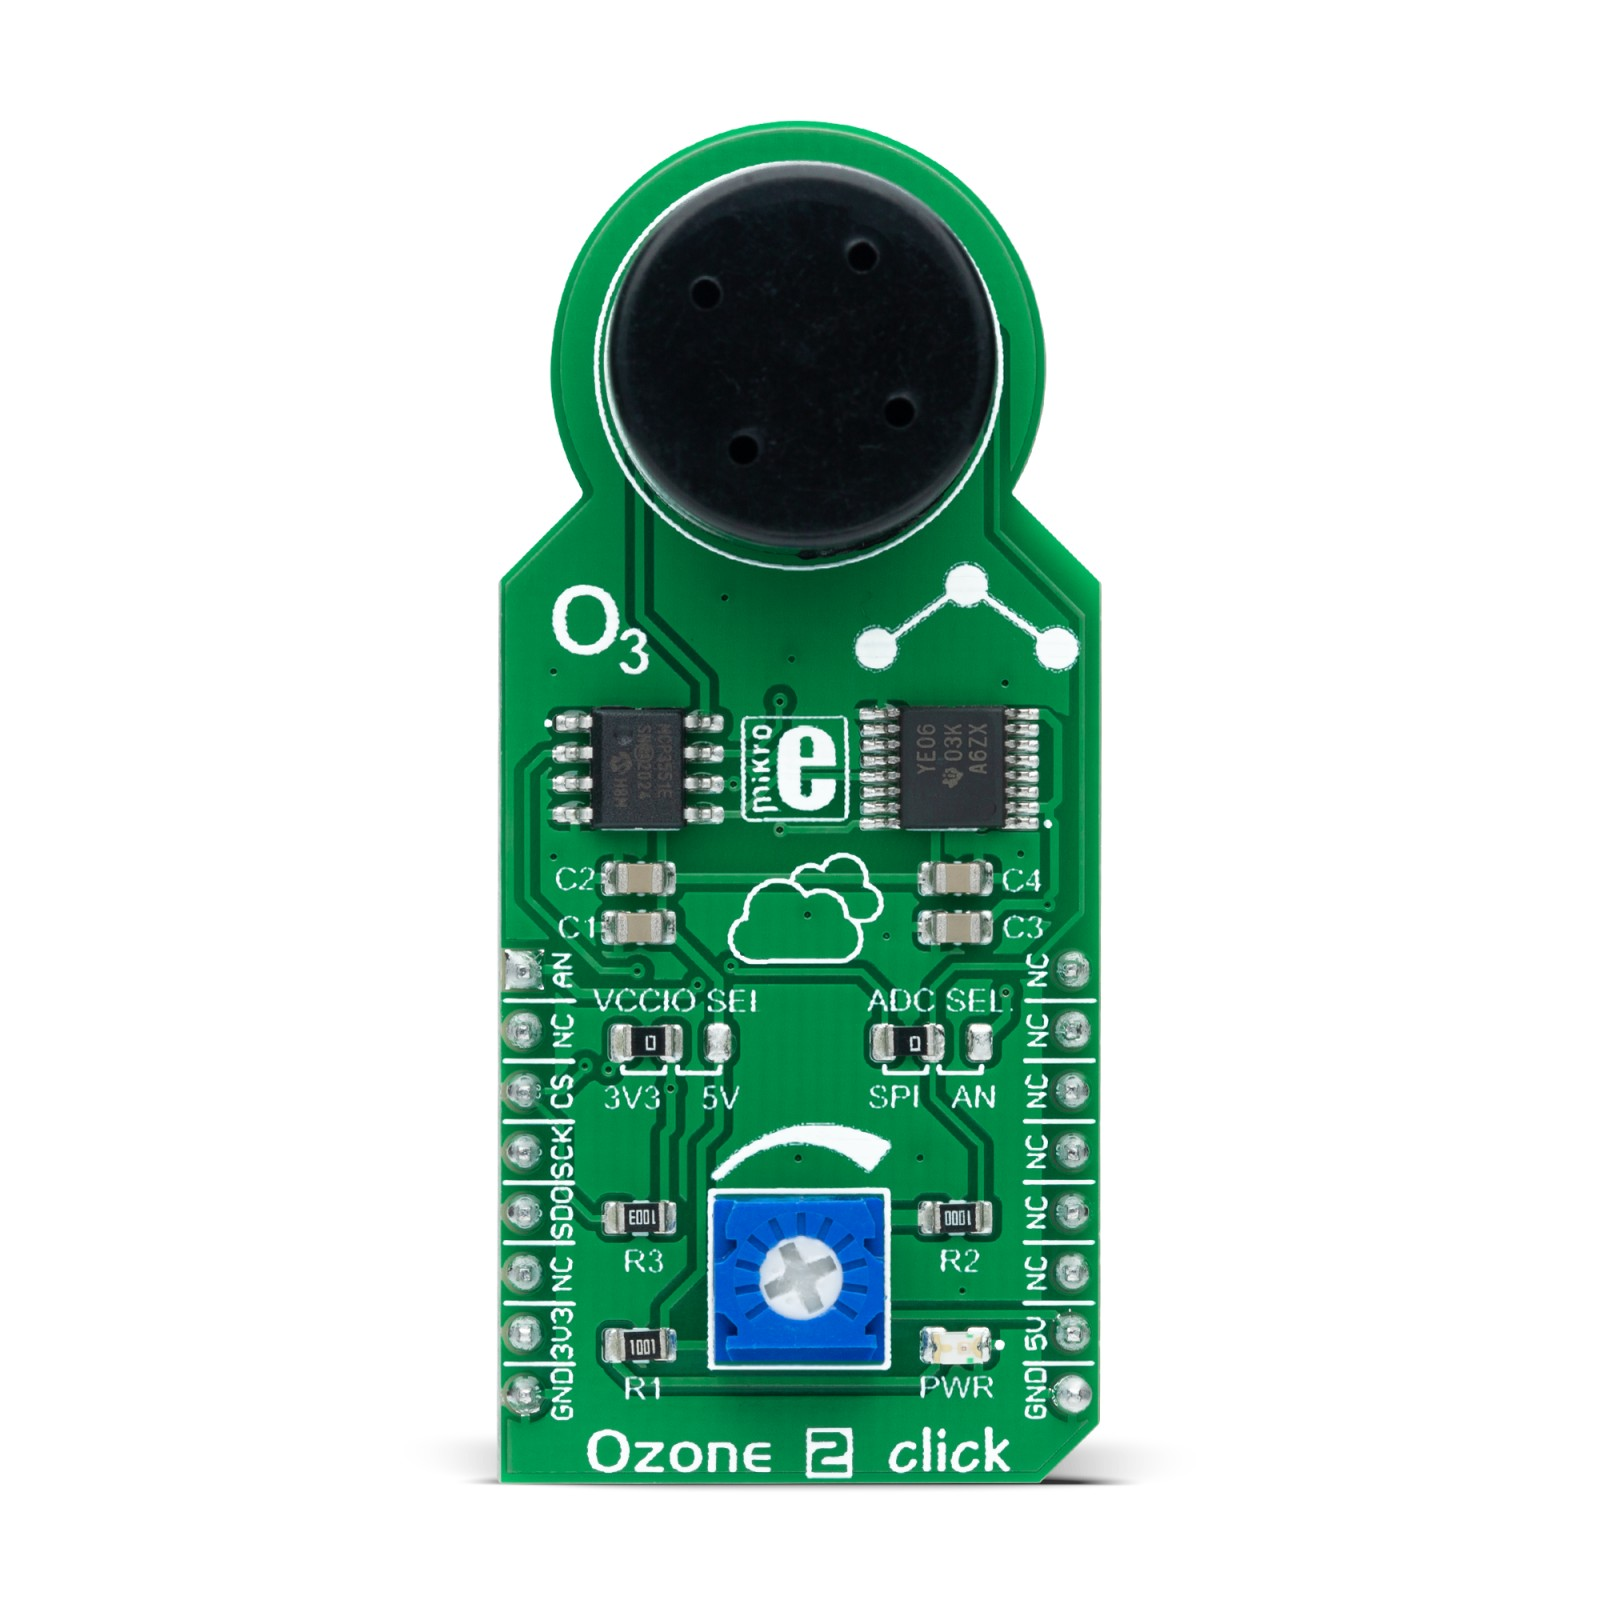 Ozone 2 Click Board With An Mq131 Sensor For O3 Mikroelektronika Usb To Wifi Adapter Circuit Diagram Datasheet Cross Reference Mgctlbxnmzp Mgctlbxv5112 Mgctlbxlc Mgctlbxpprestashop